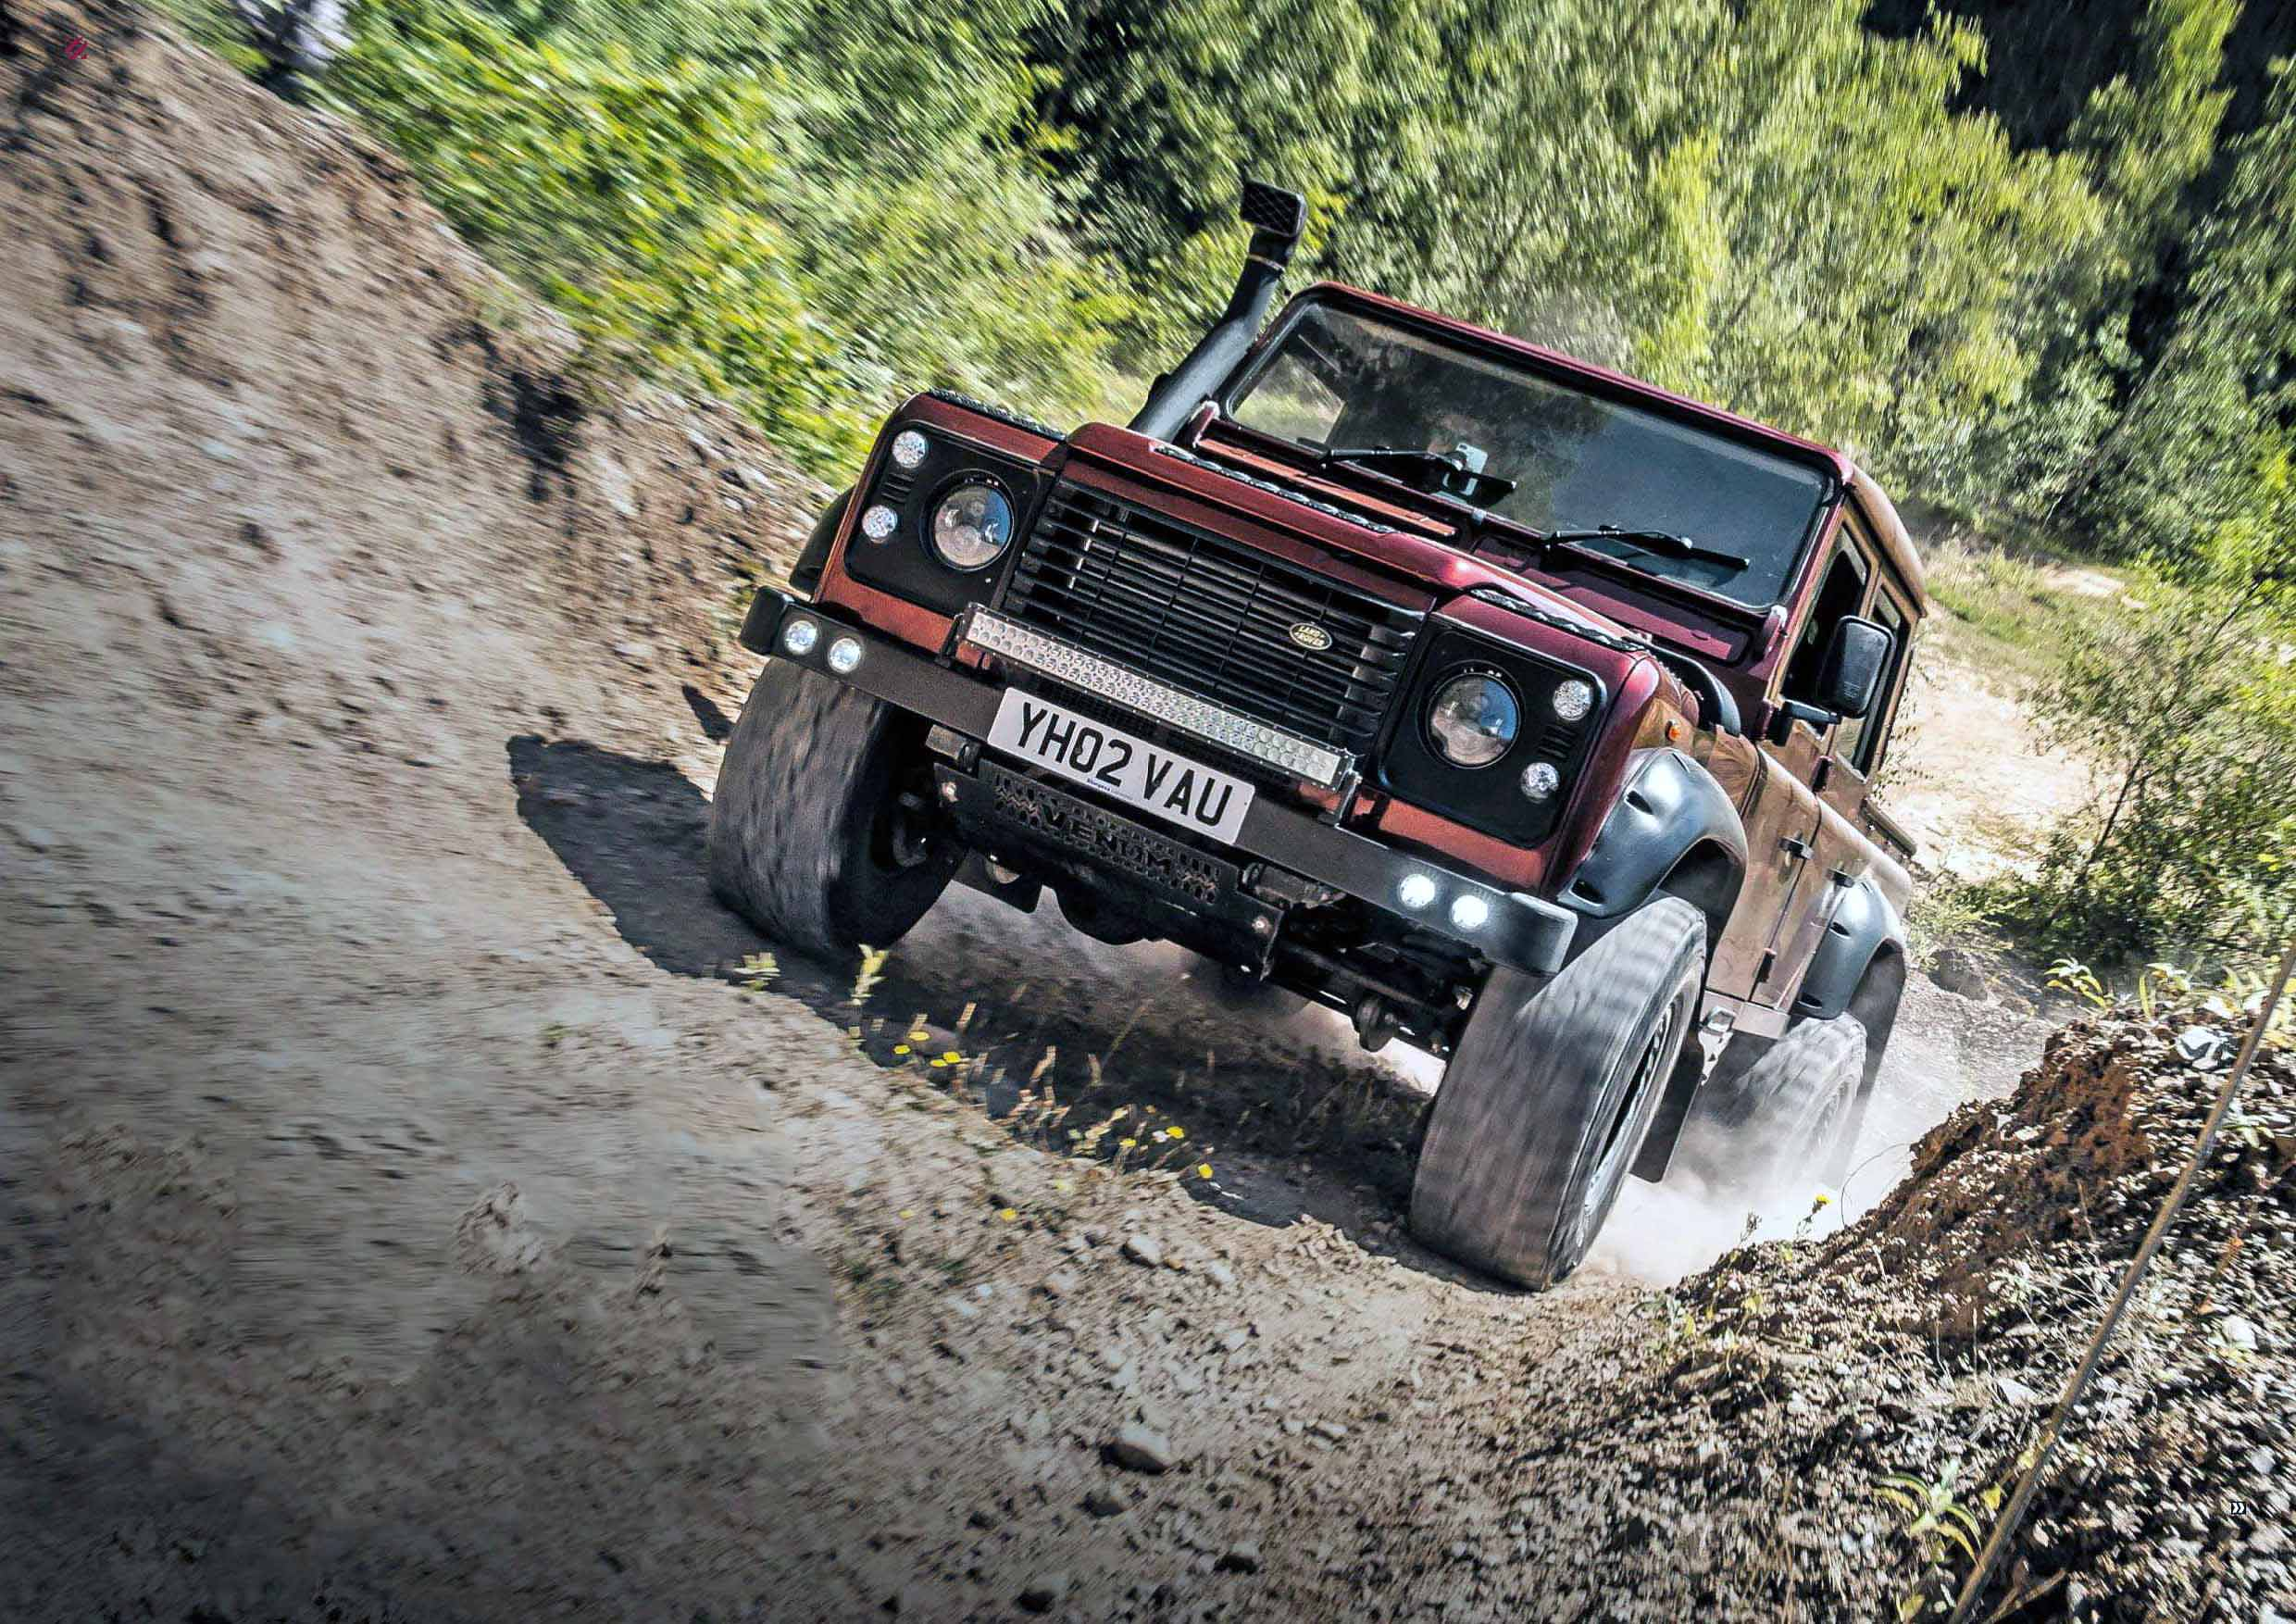 Modified 2002 Land Rover Defender 110 Double Cab